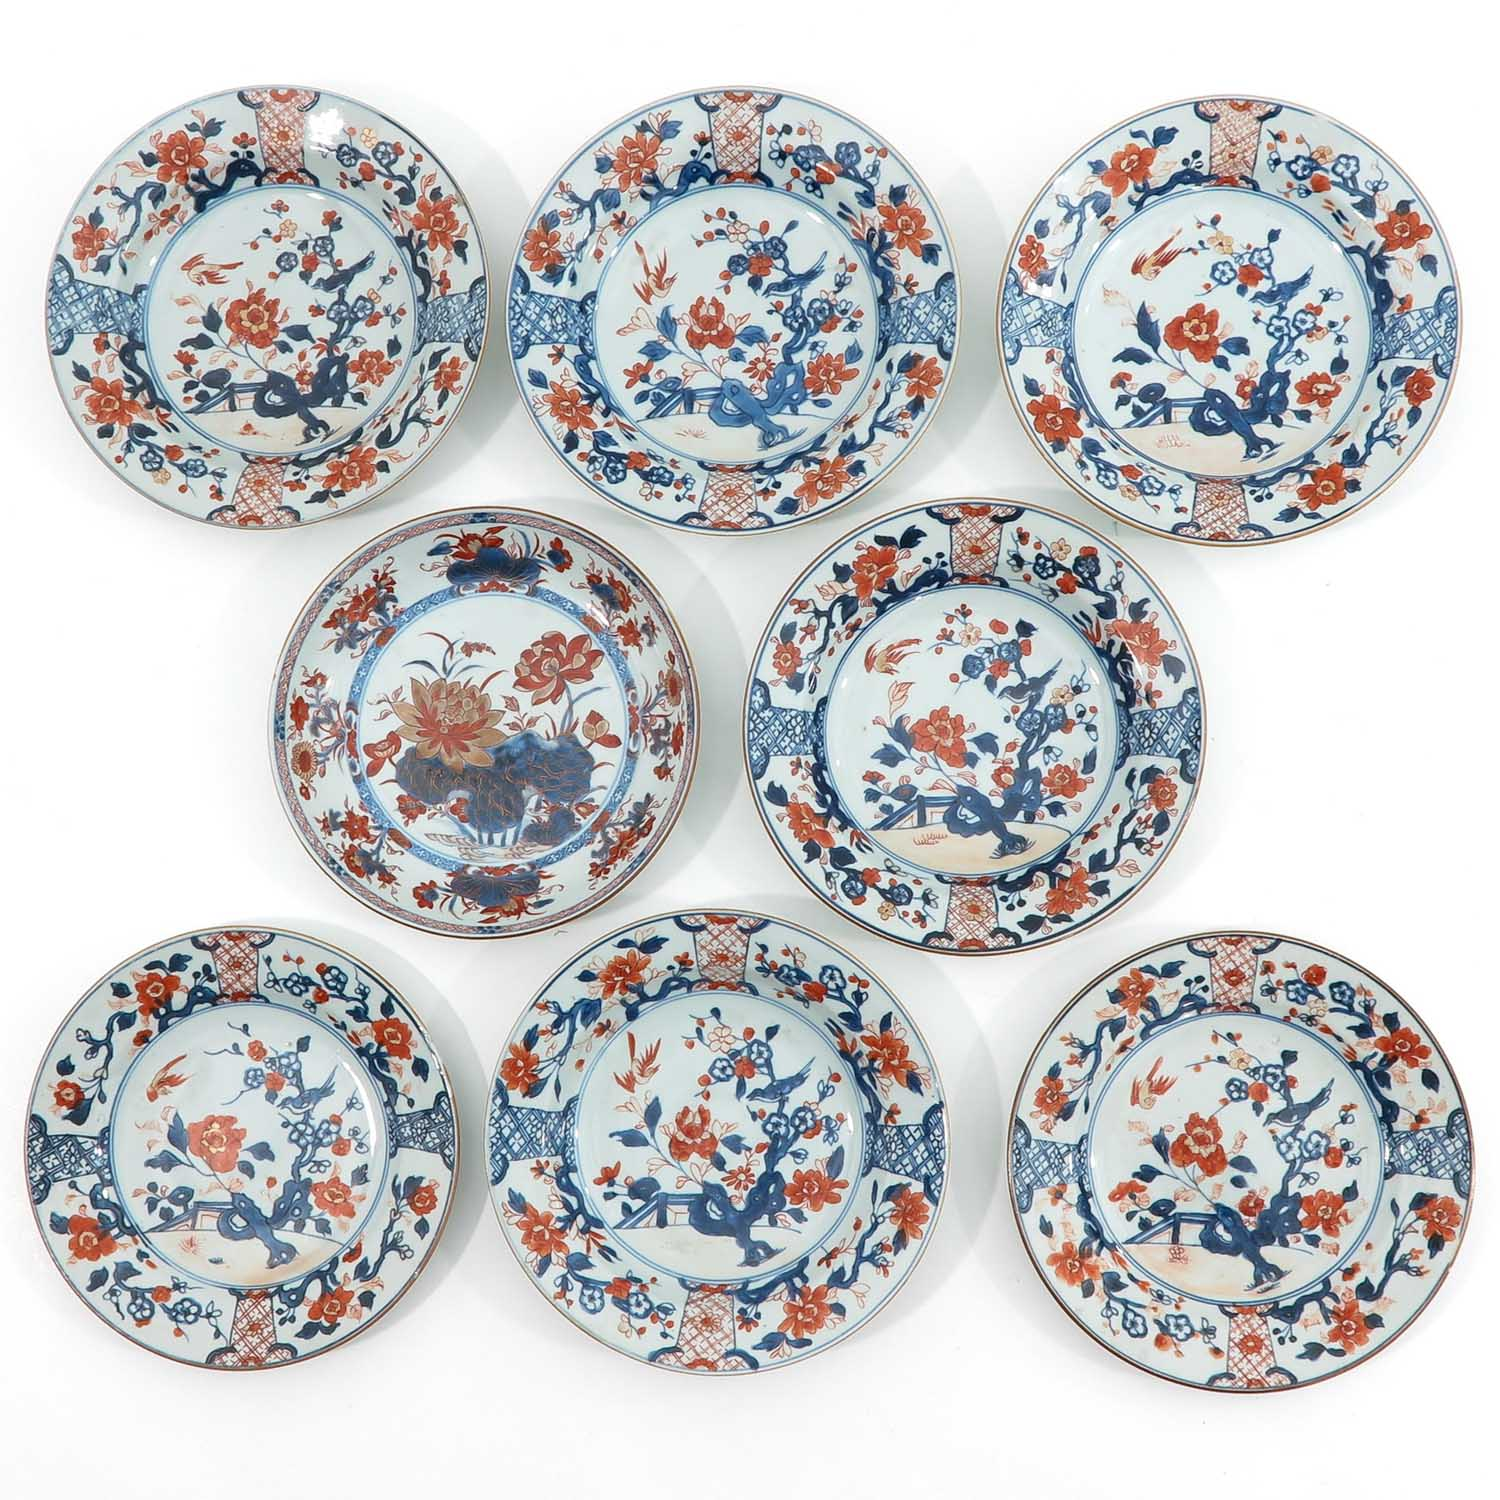 A Collection of 8 Imari Decor Plates